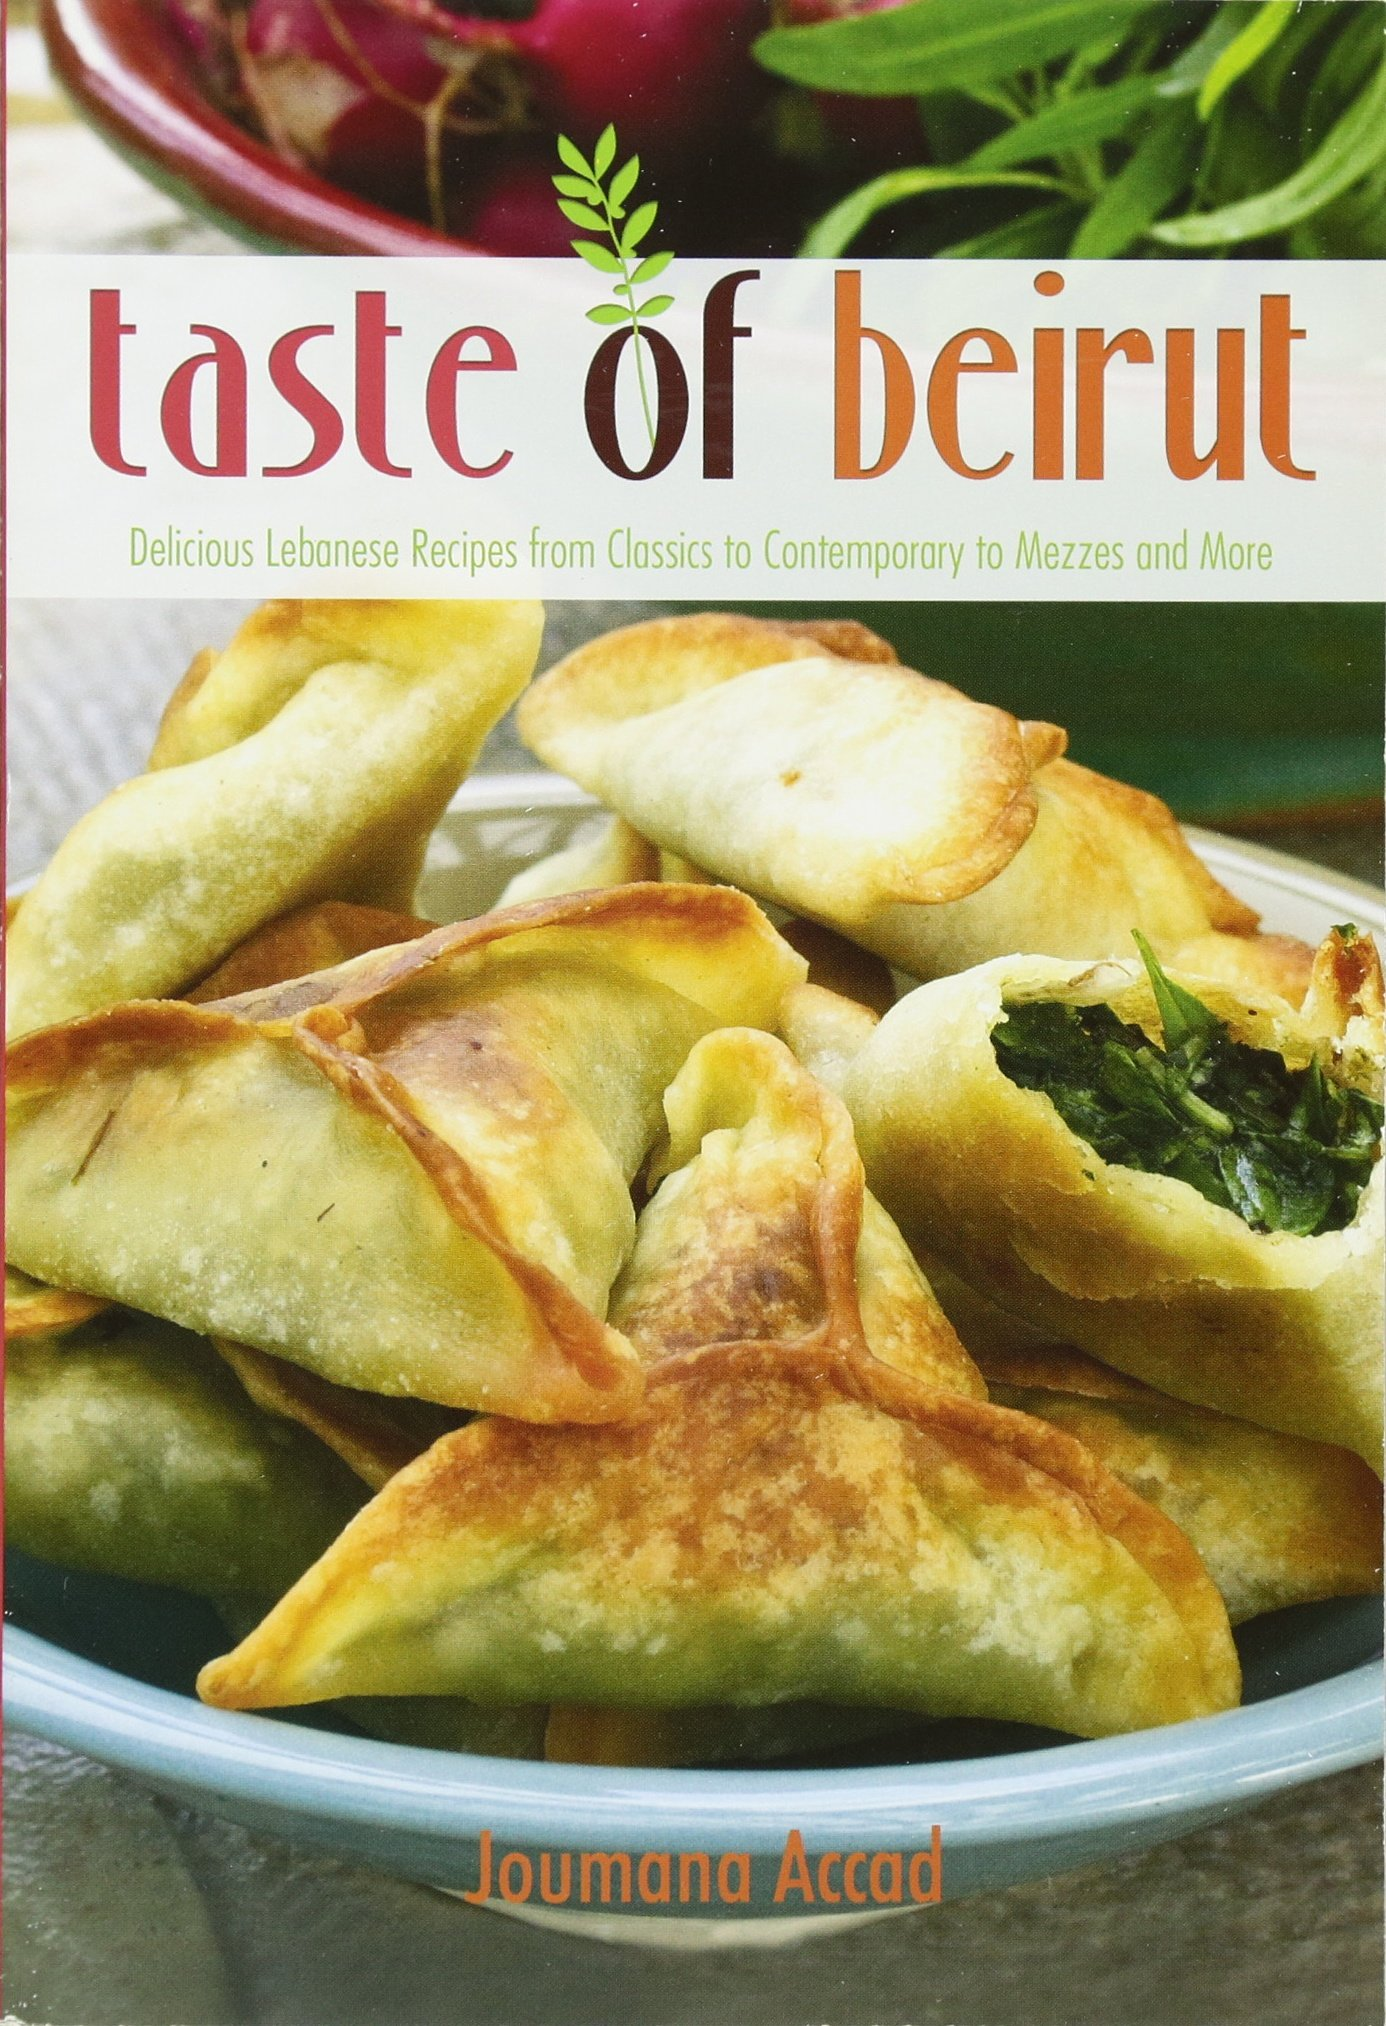 Download Taste of Beirut: 175+ Delicious Lebanese Recipes from Classics to Contemporary to Mezzes and More pdf